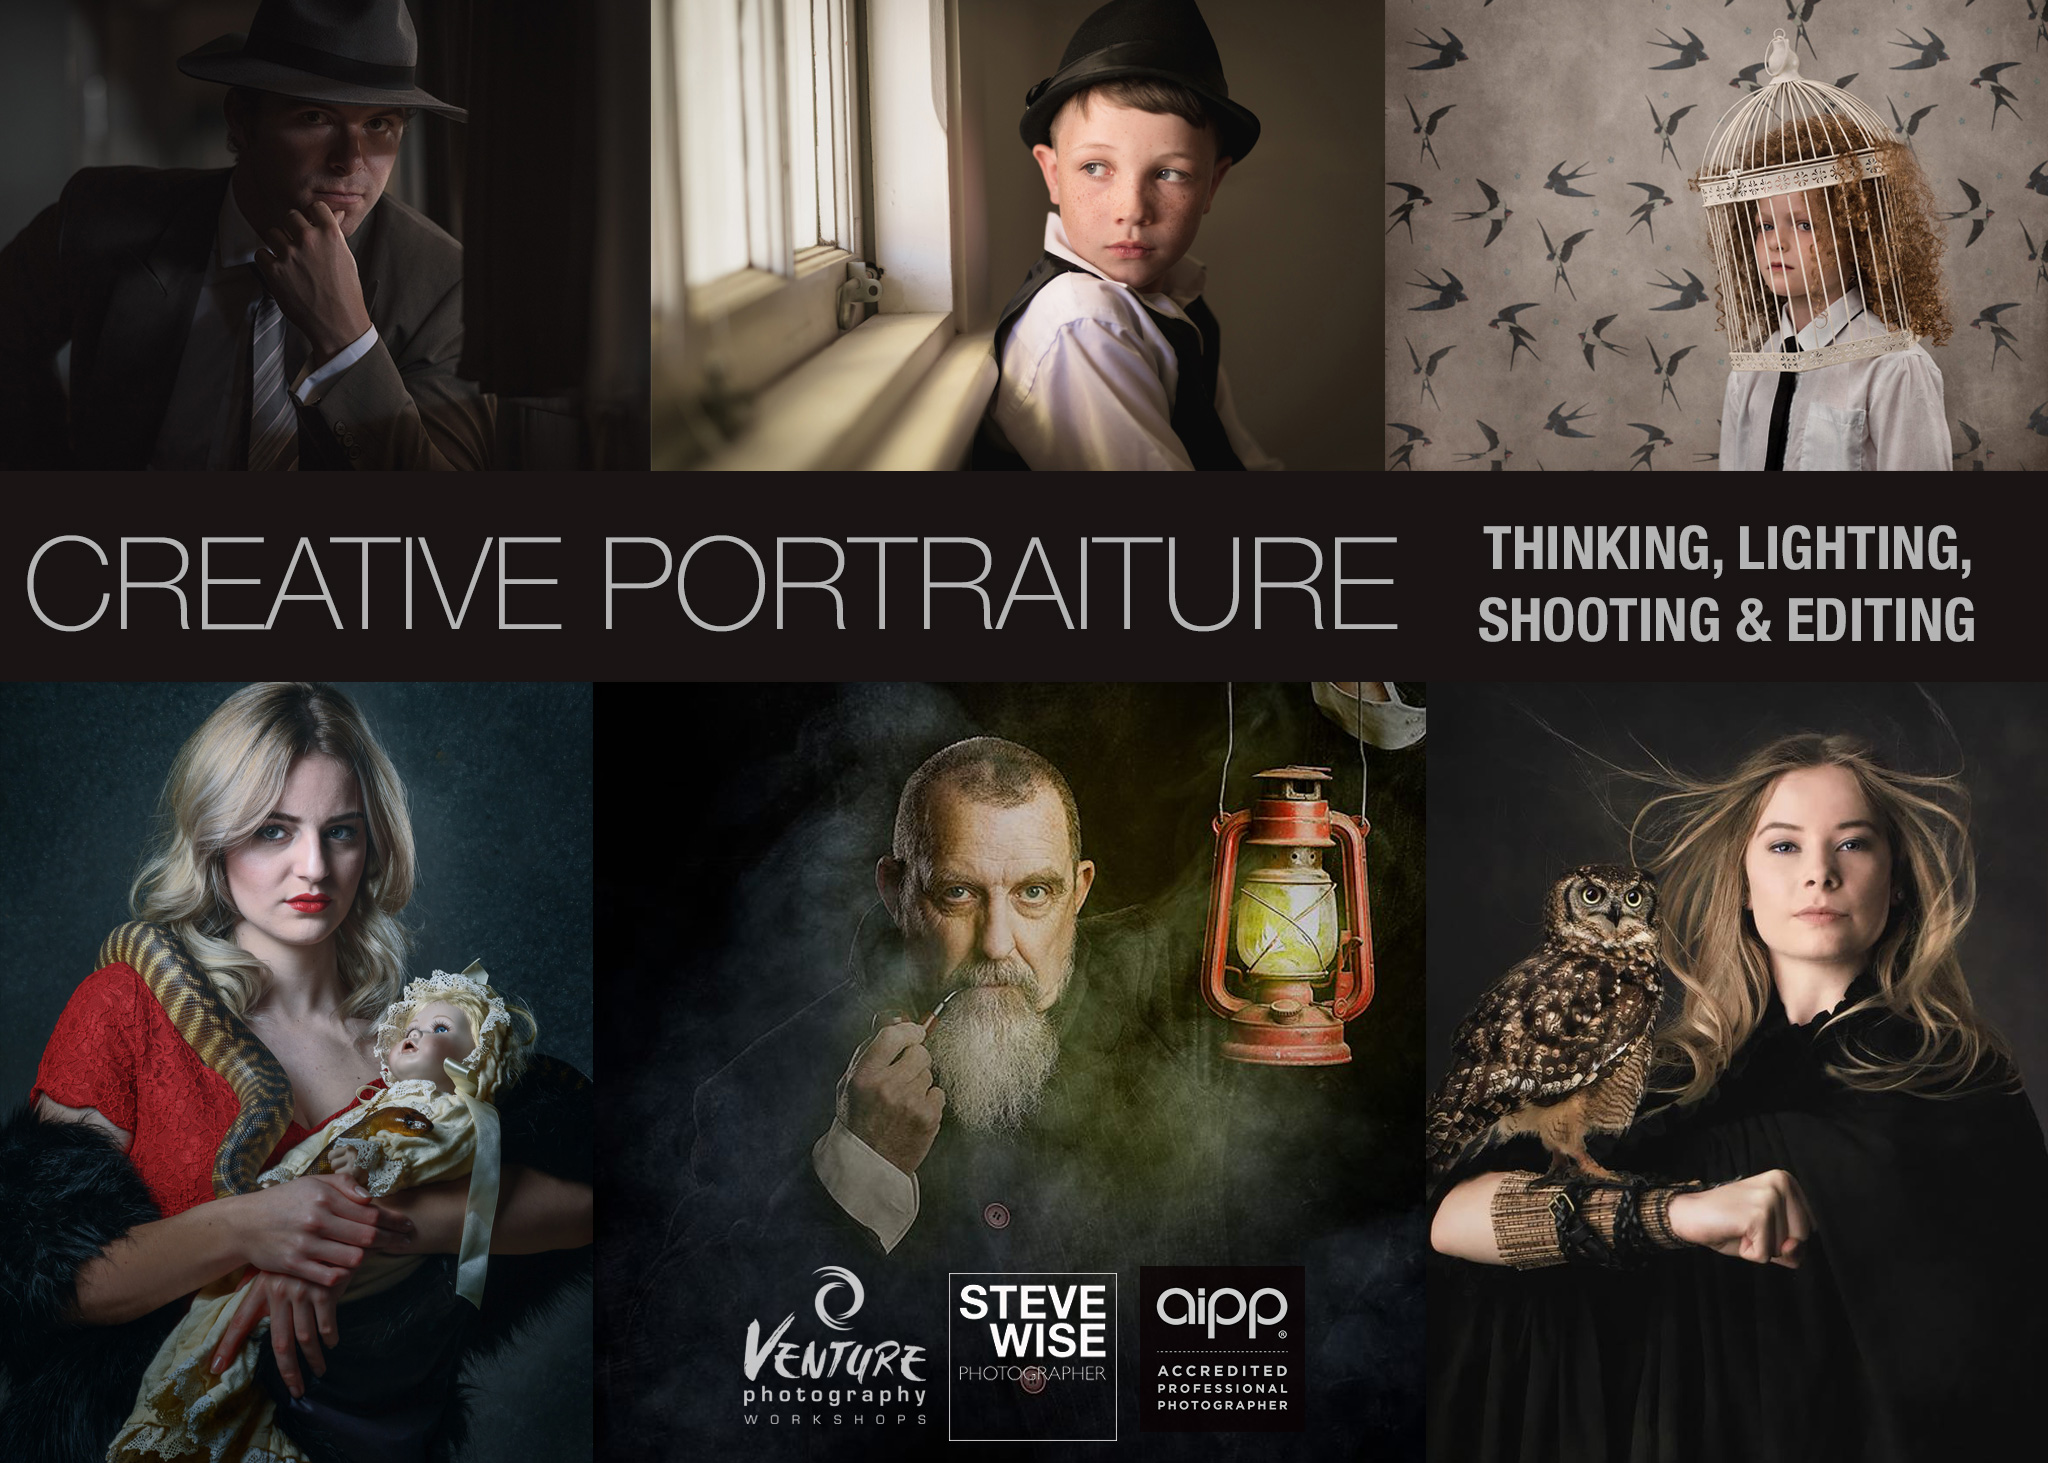 Creative Portraiture: Thinking, Lighting, Shooting & Editing